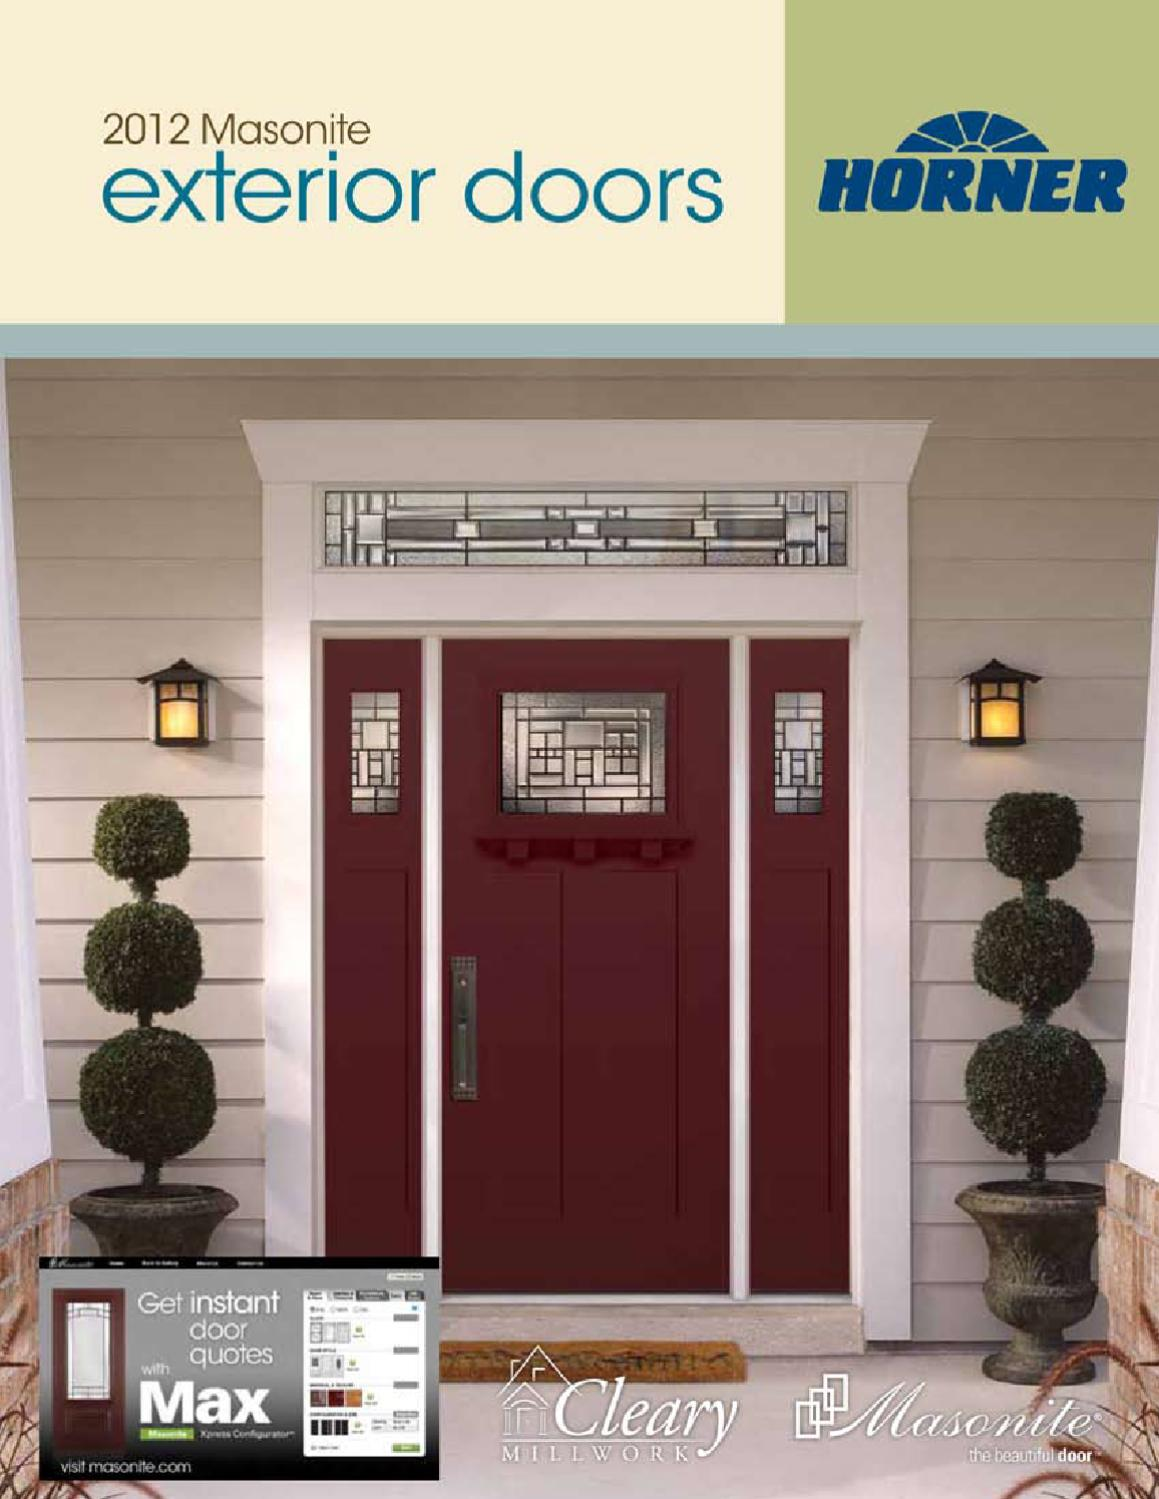 1499 #043F77 MDL Doors 2011 Quick Ship By MDL Doors Issuu save image Masonite Exterior Doors 39571159